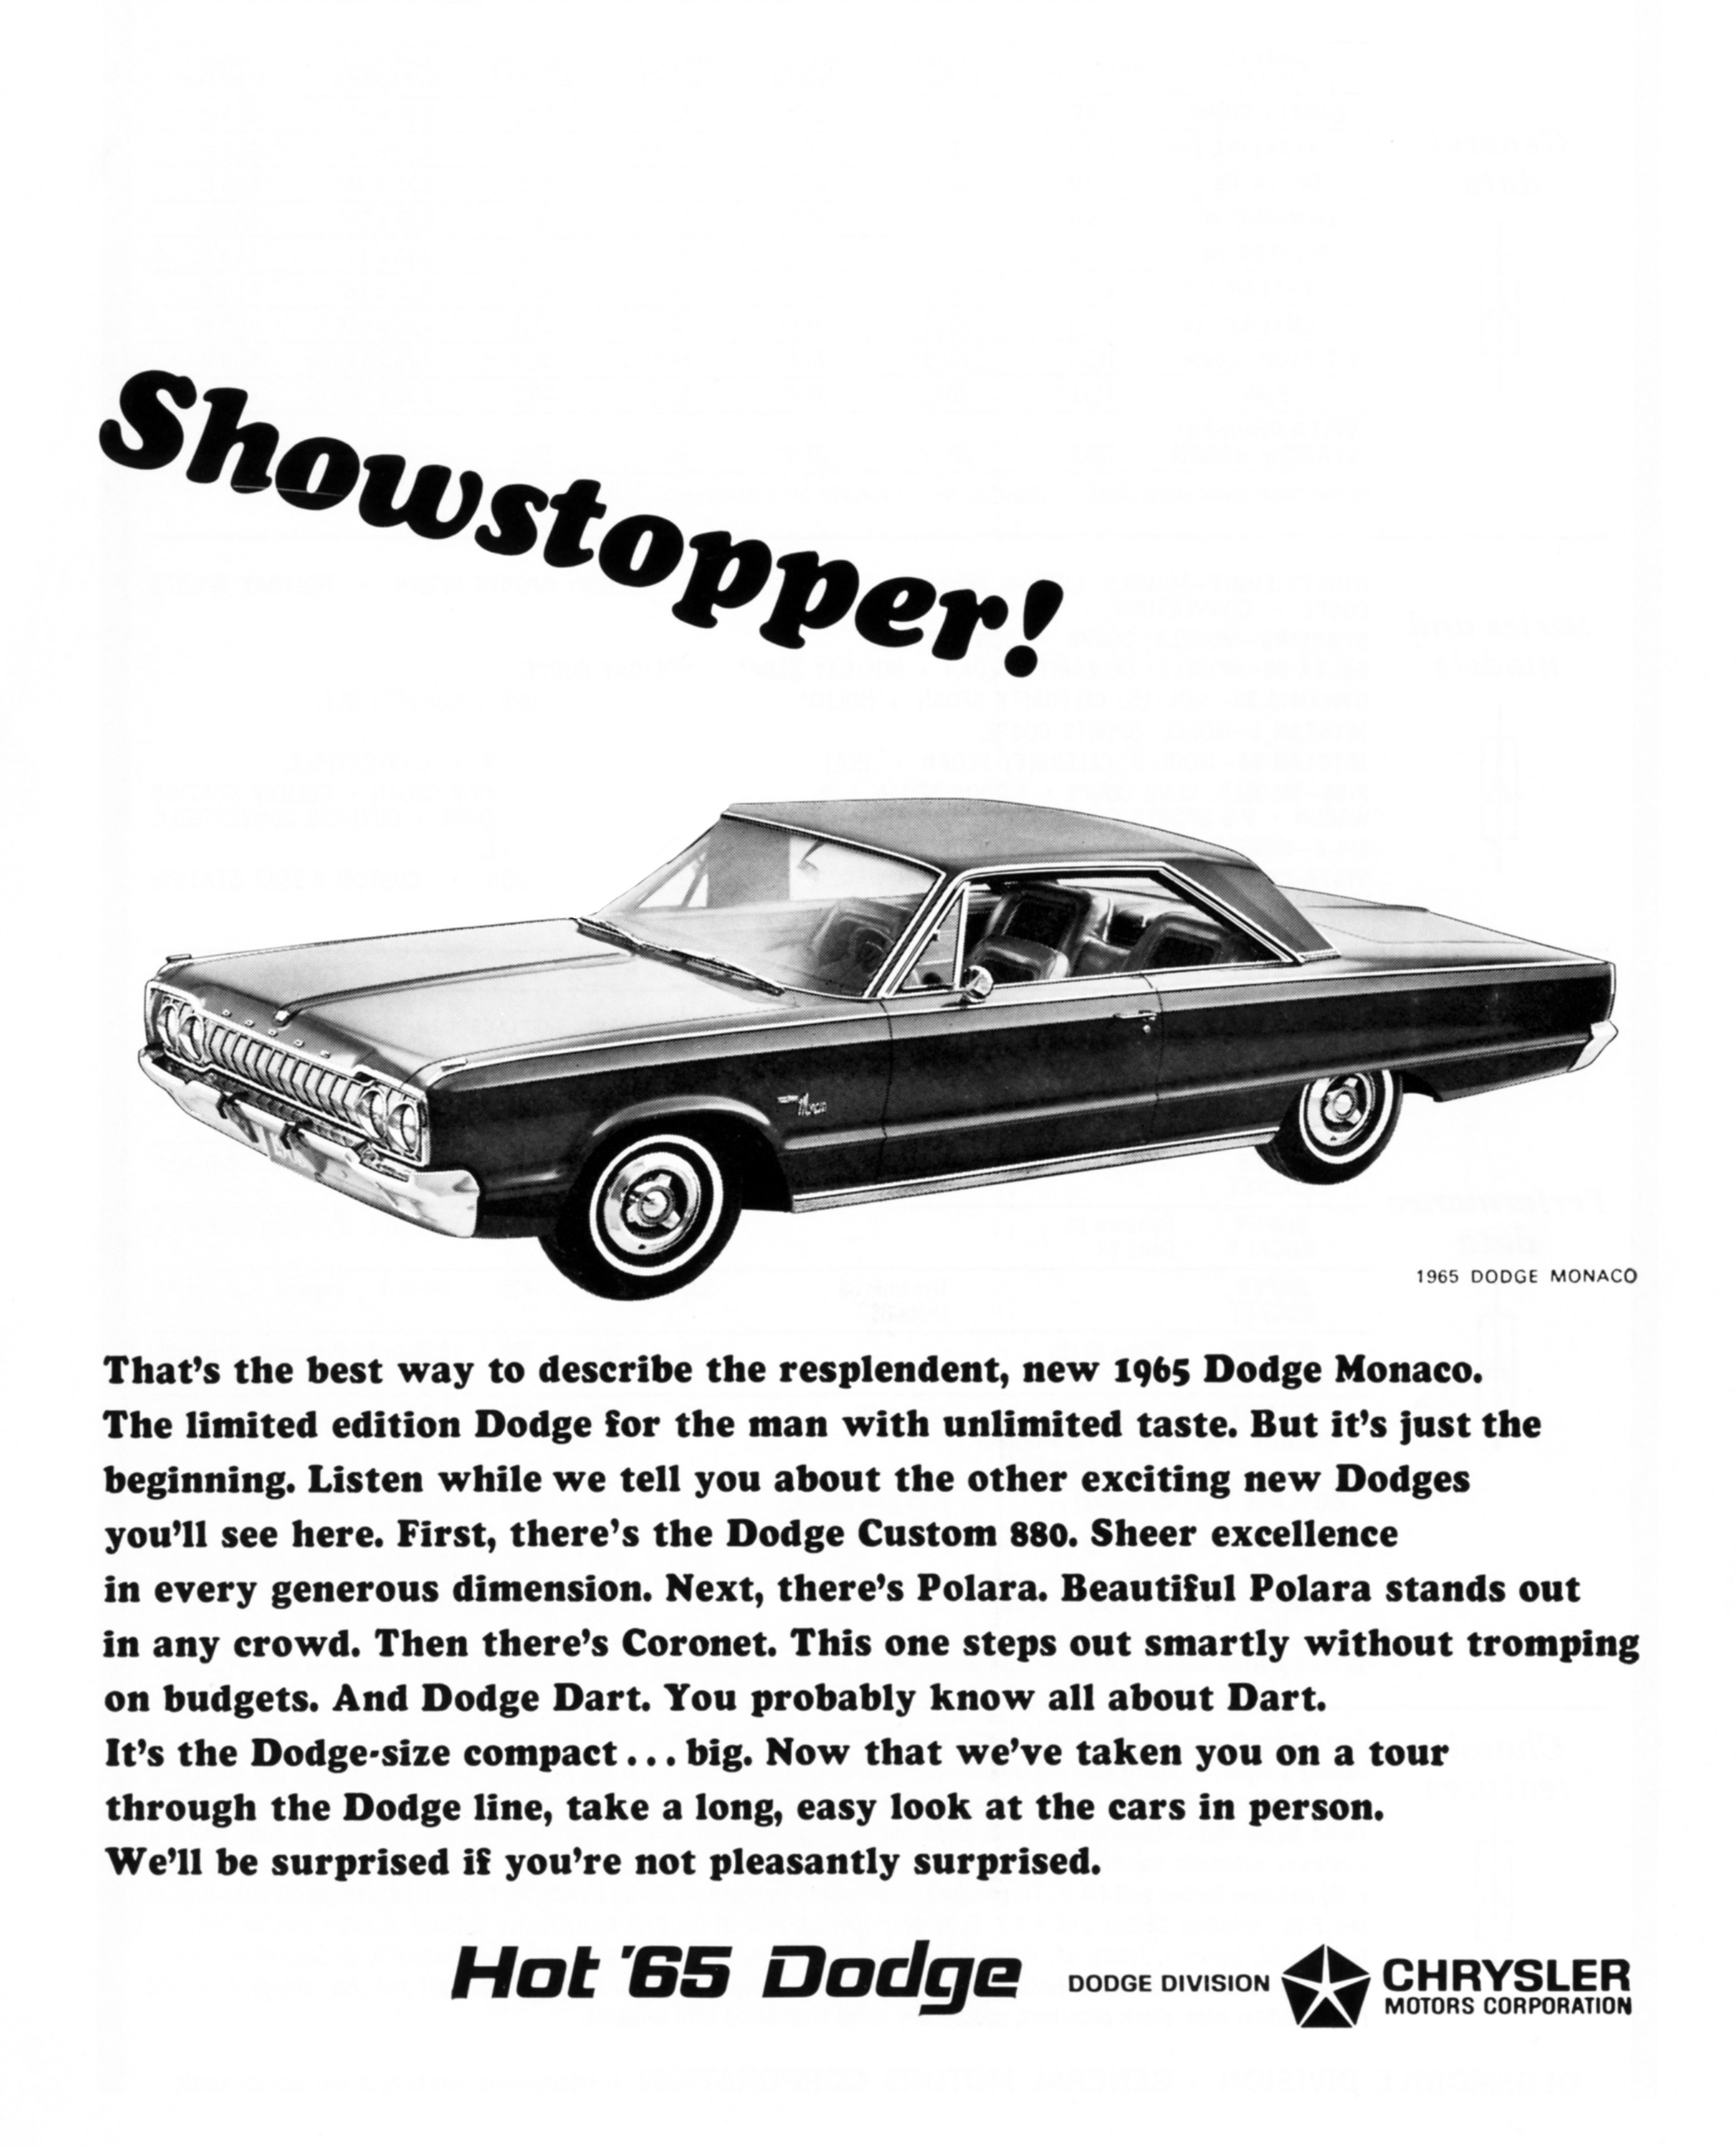 1965 Dodge Monaco advertisement